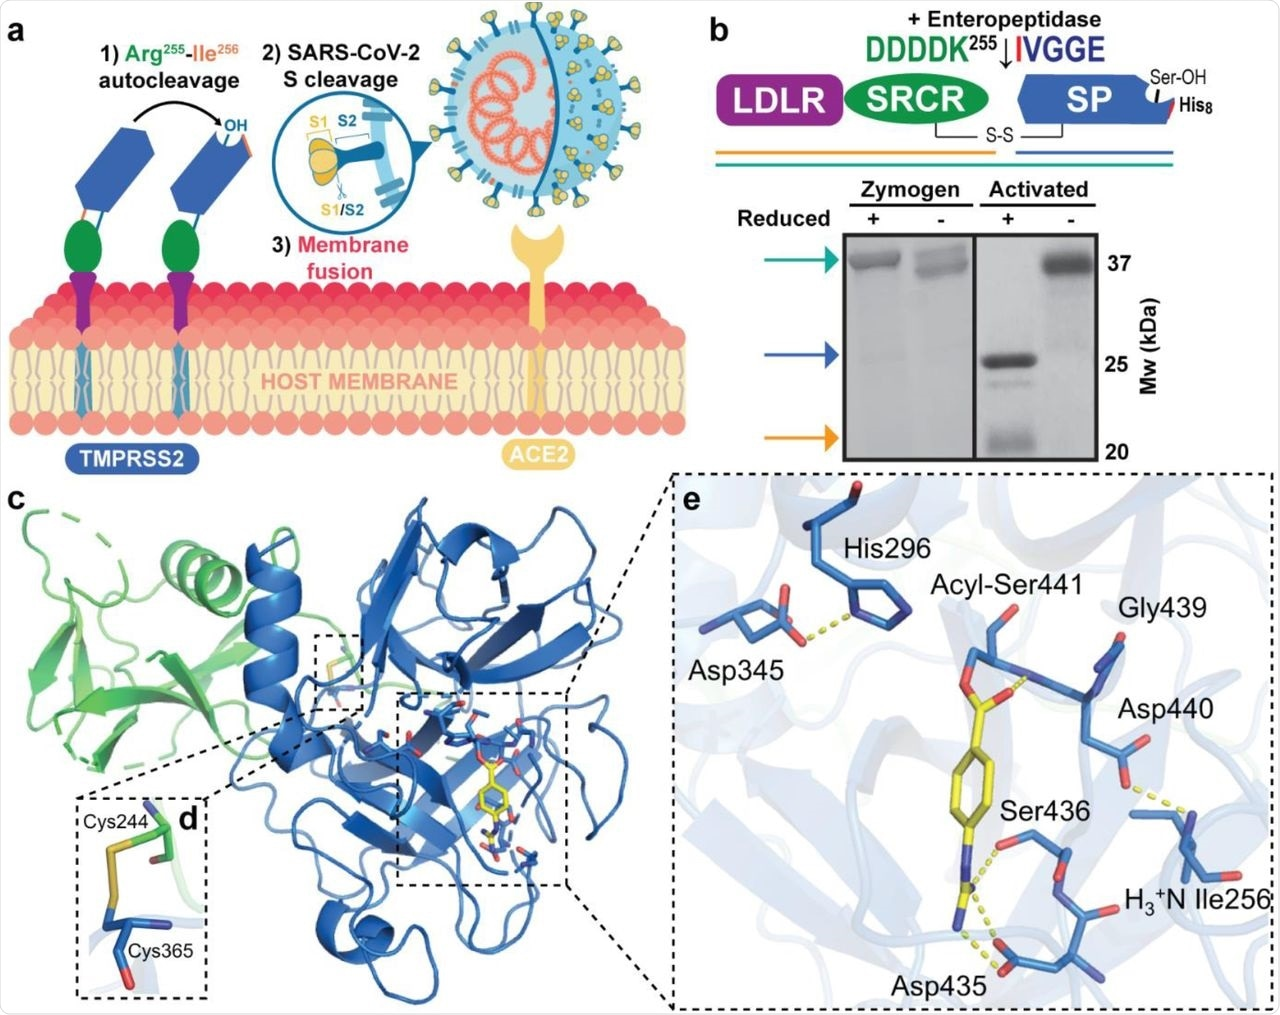 Engineered activation and structural characterization of stabilized TMPRSS2 ectodomain. a Full-length, membrane bound TMPRSS2 zymogen undergoes autocleavage activation at the Arg255-Ile256 peptide bond and the matured enzyme proteolytically processes SARS-CoV-2 Spike protein docked to the ACE2 receptor to drive viral membrane fusion. b Engineered recombinant TMPRSS2 ectodomain containing the low-density lipoprotein receptor type-A (LDLR) domain, a Class A Scavenger Receptor Cysteine-Rich (SRCR) domain and a C-terminal trypsin-like serine peptidase (SP) domain, features an enteropeptidase-cleavable DDDDK255 substitution to facilitate controlled zymogen activation. The non-catalytic (LDLR+SRCR) and catalytic (SP) chains are tethered by a disulfide bond and the activation status can be interrogated by SDS-PAGE under non-reducing and reducing (5% β-mercaptoethanol) conditions. c X-ray crystal structure of activated TMPRSS2 ectodomain pre-treated with nafamostat (yellow sticks). d The interdomain disulfide pair (Cys244-Cys365) maintains covalent attachment of the SRCR and SP domains. e Close-up view of the SP catalytic triad residues (His296, Asp345 and Ser441) and the post-activation Asp440:Ile256 salt bridge showing complete maturation of the protease. Nafamostat treatment results in phenylguanidino acylation of Ser441. Polar contacts are shown as yellow dashed lines.